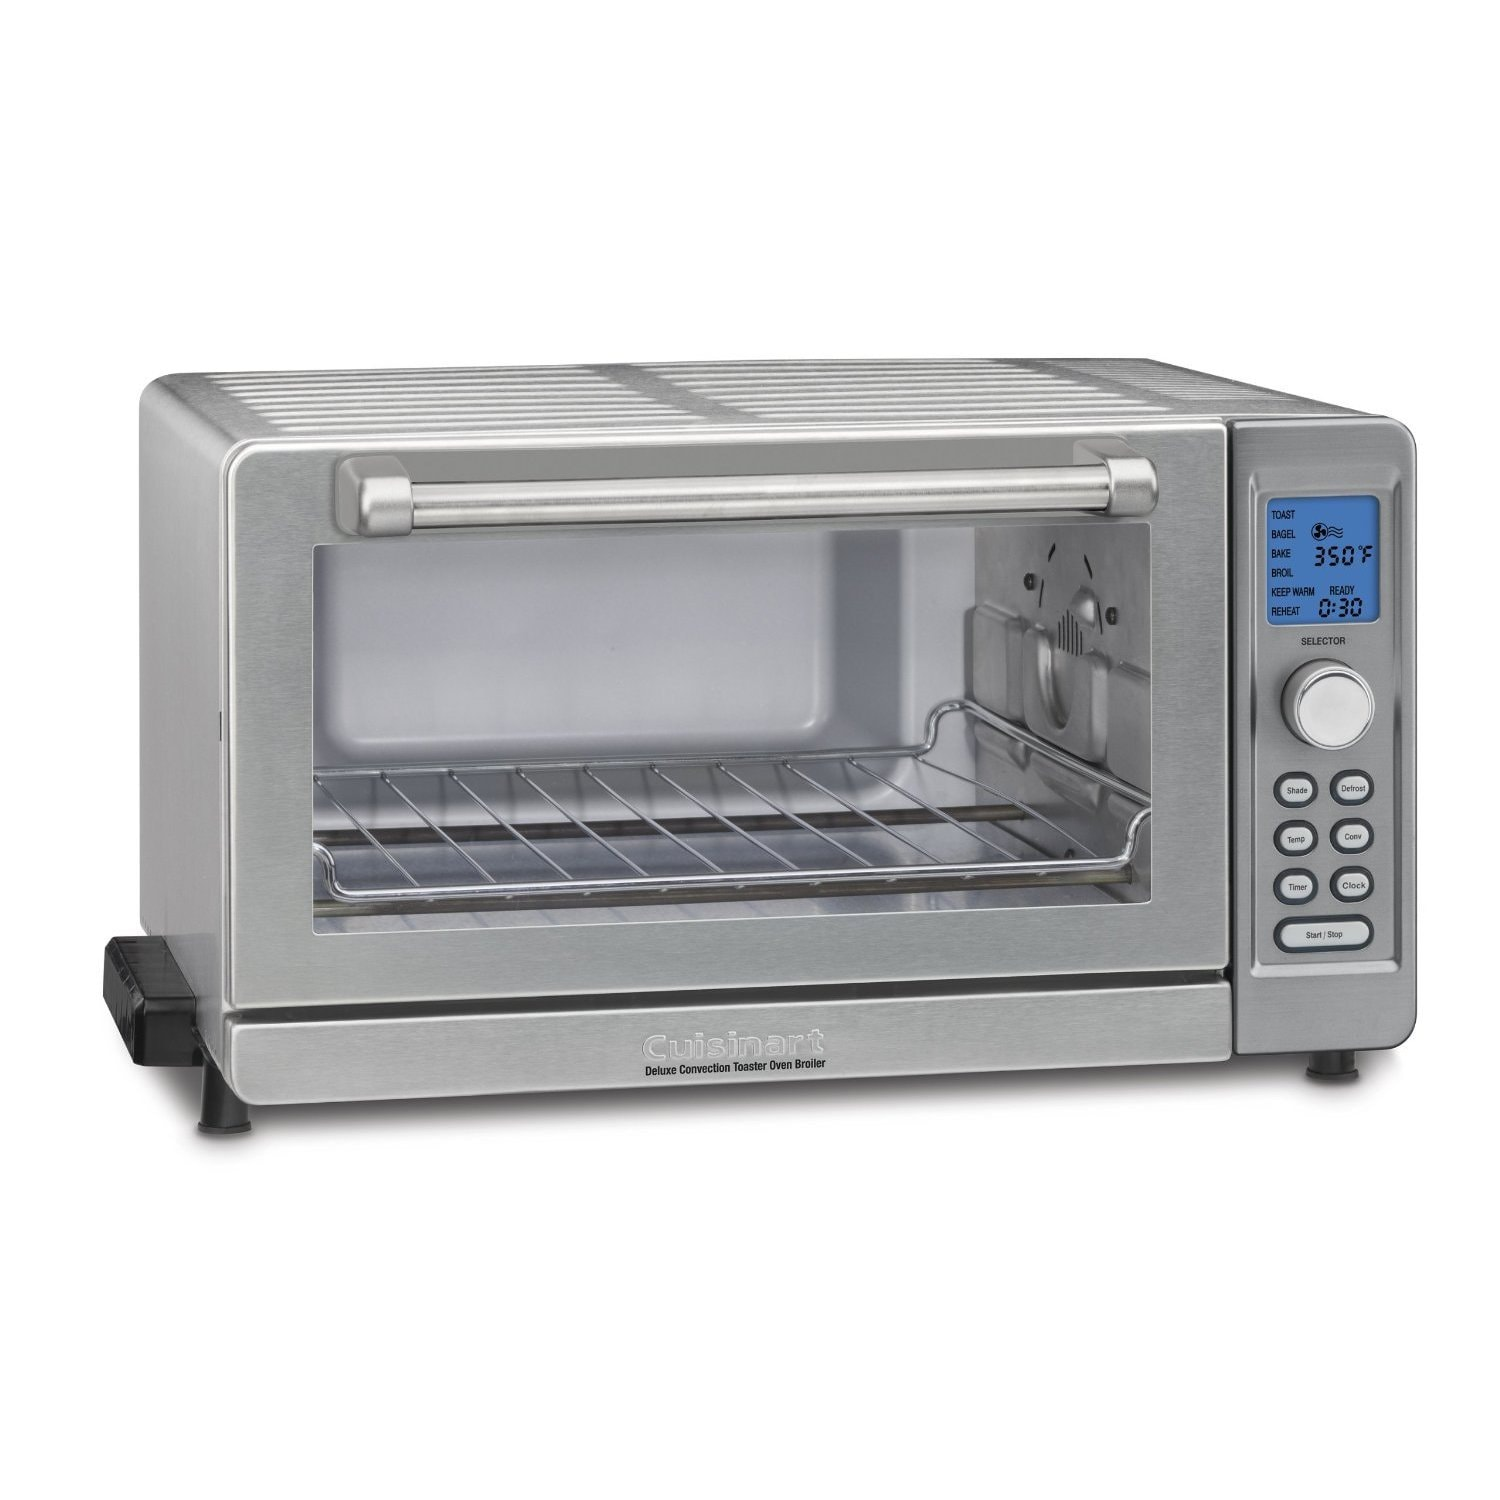 toaster slice and see ero elite the with rotisserie maximatic griddle top pick reviews grill best cuisine need over these oven